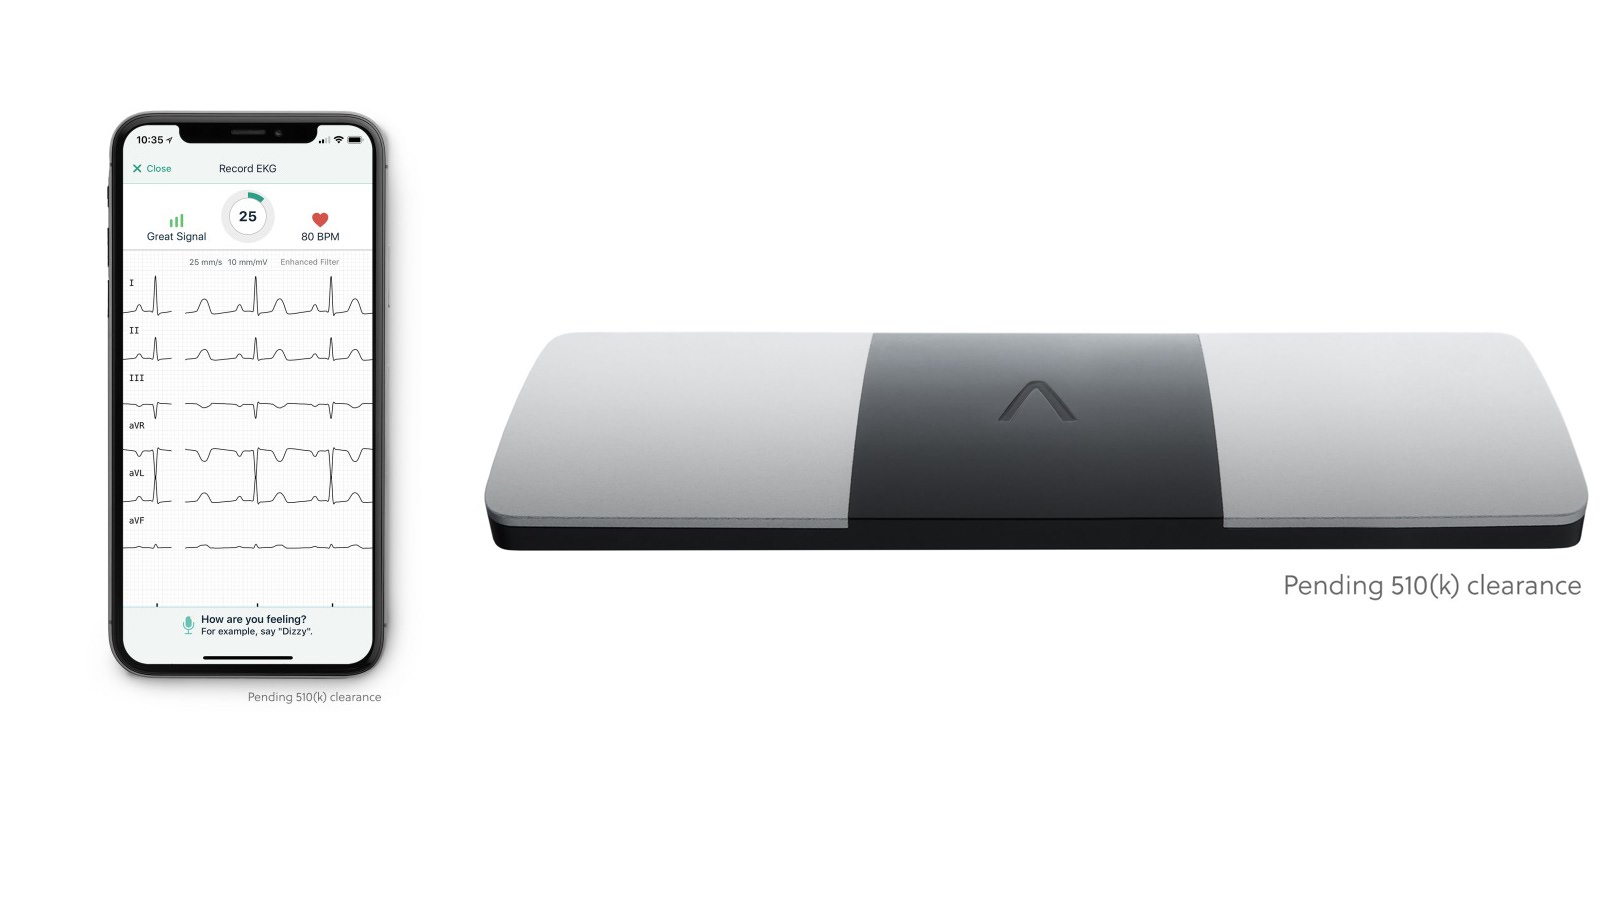 AliveCor responds to Apple Watch ECG w/ 6-lead reader capable of detecting 100 diseases